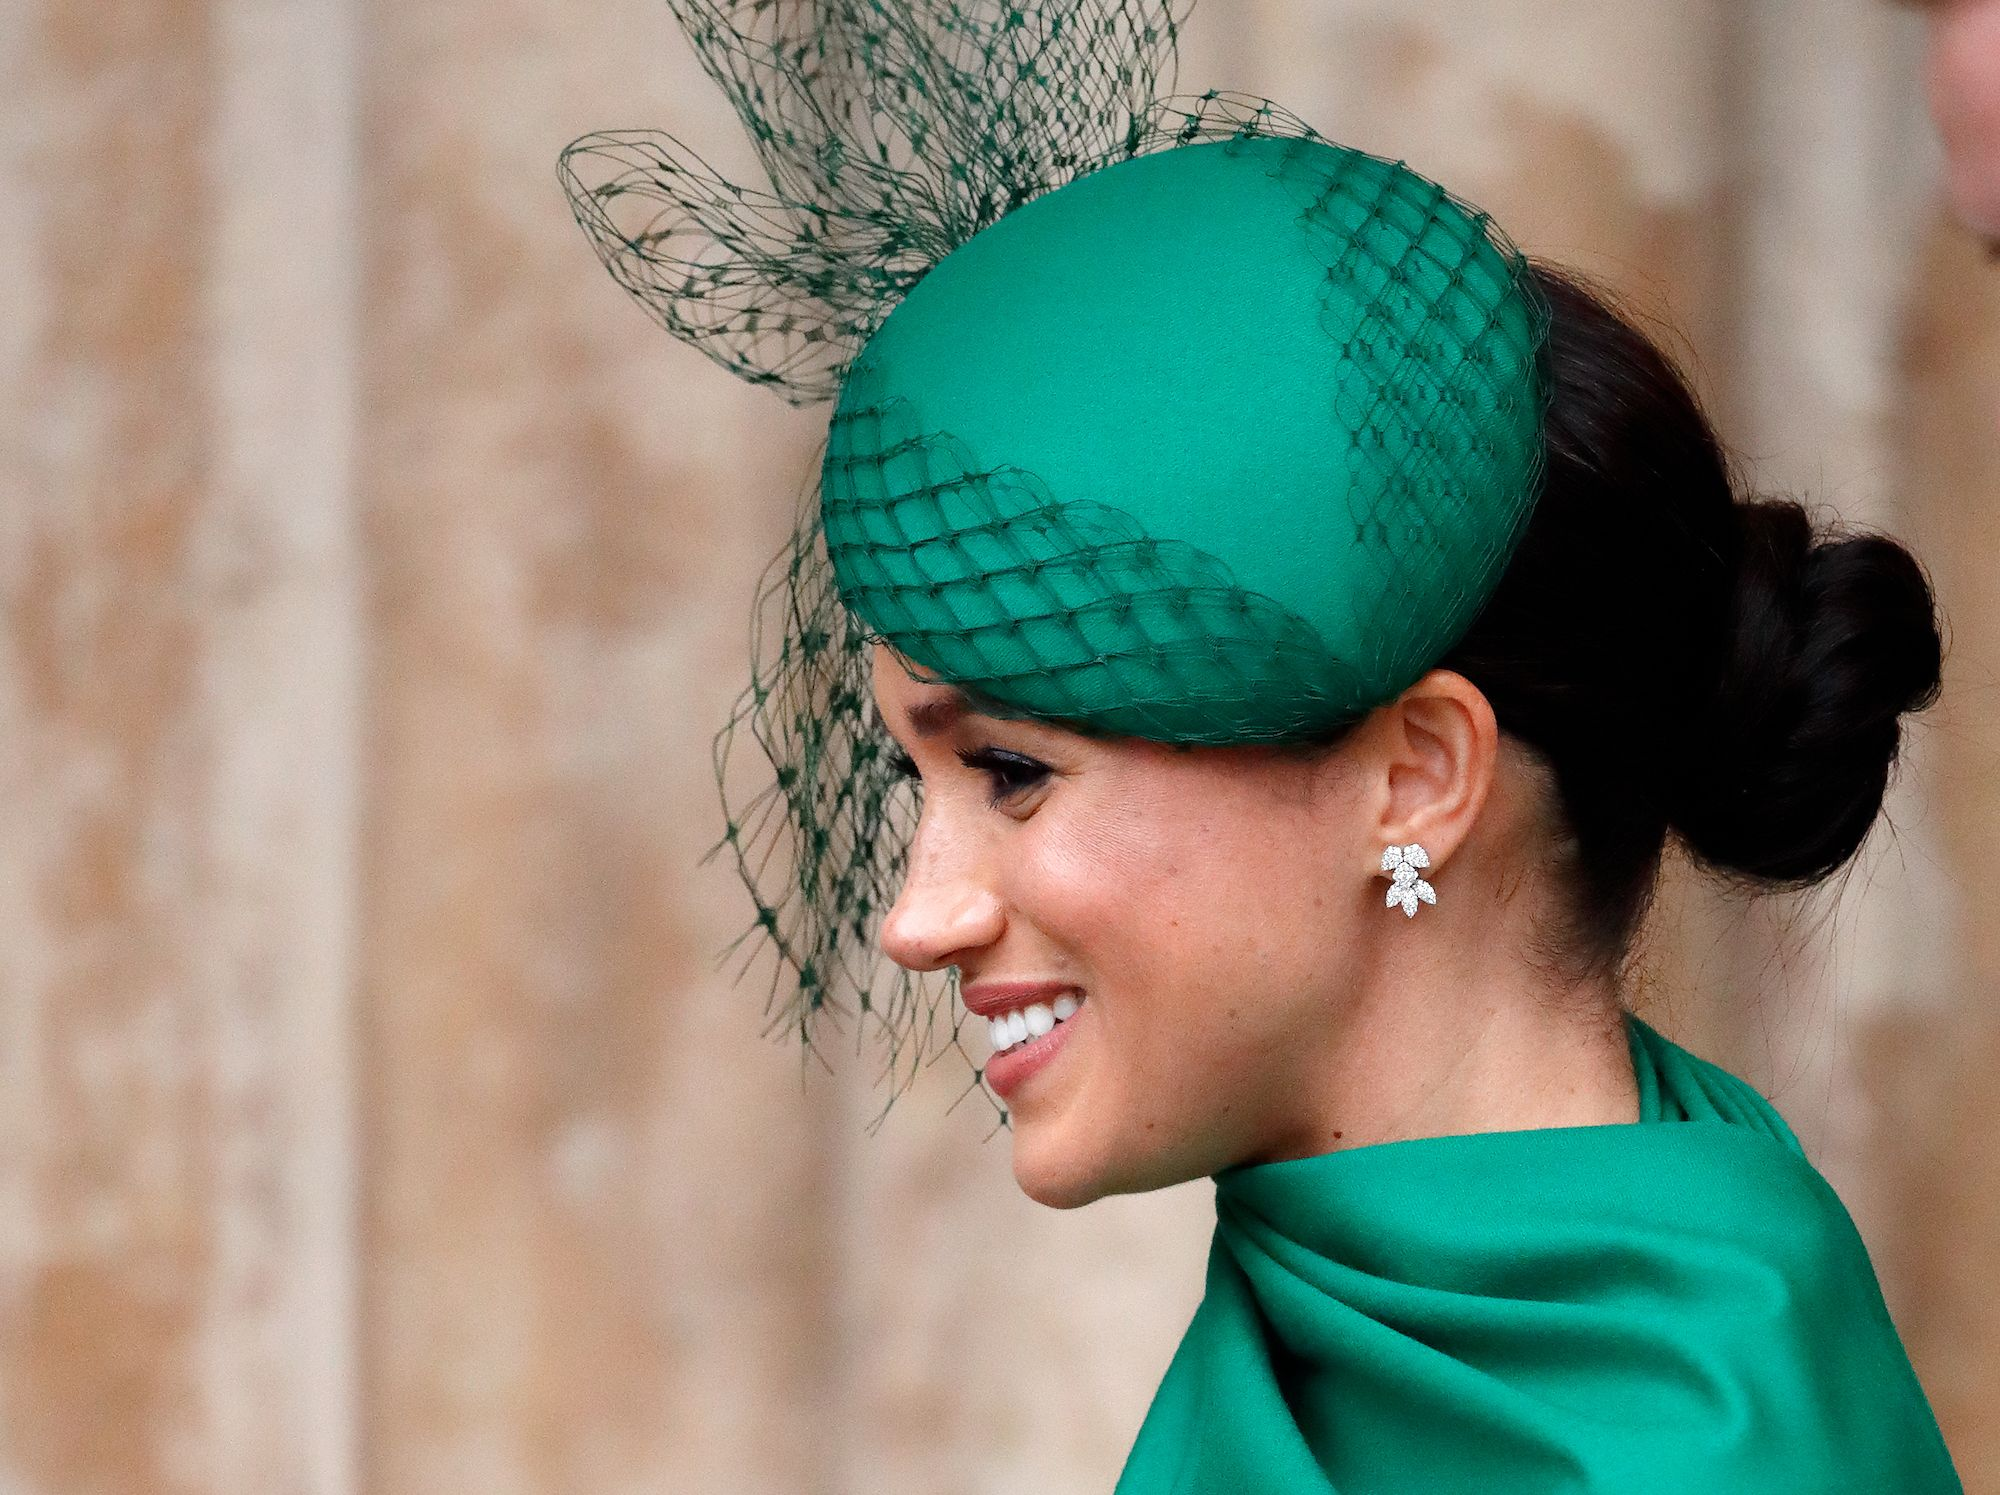 Meghan Markle Is Set To Make Her Disney Debut